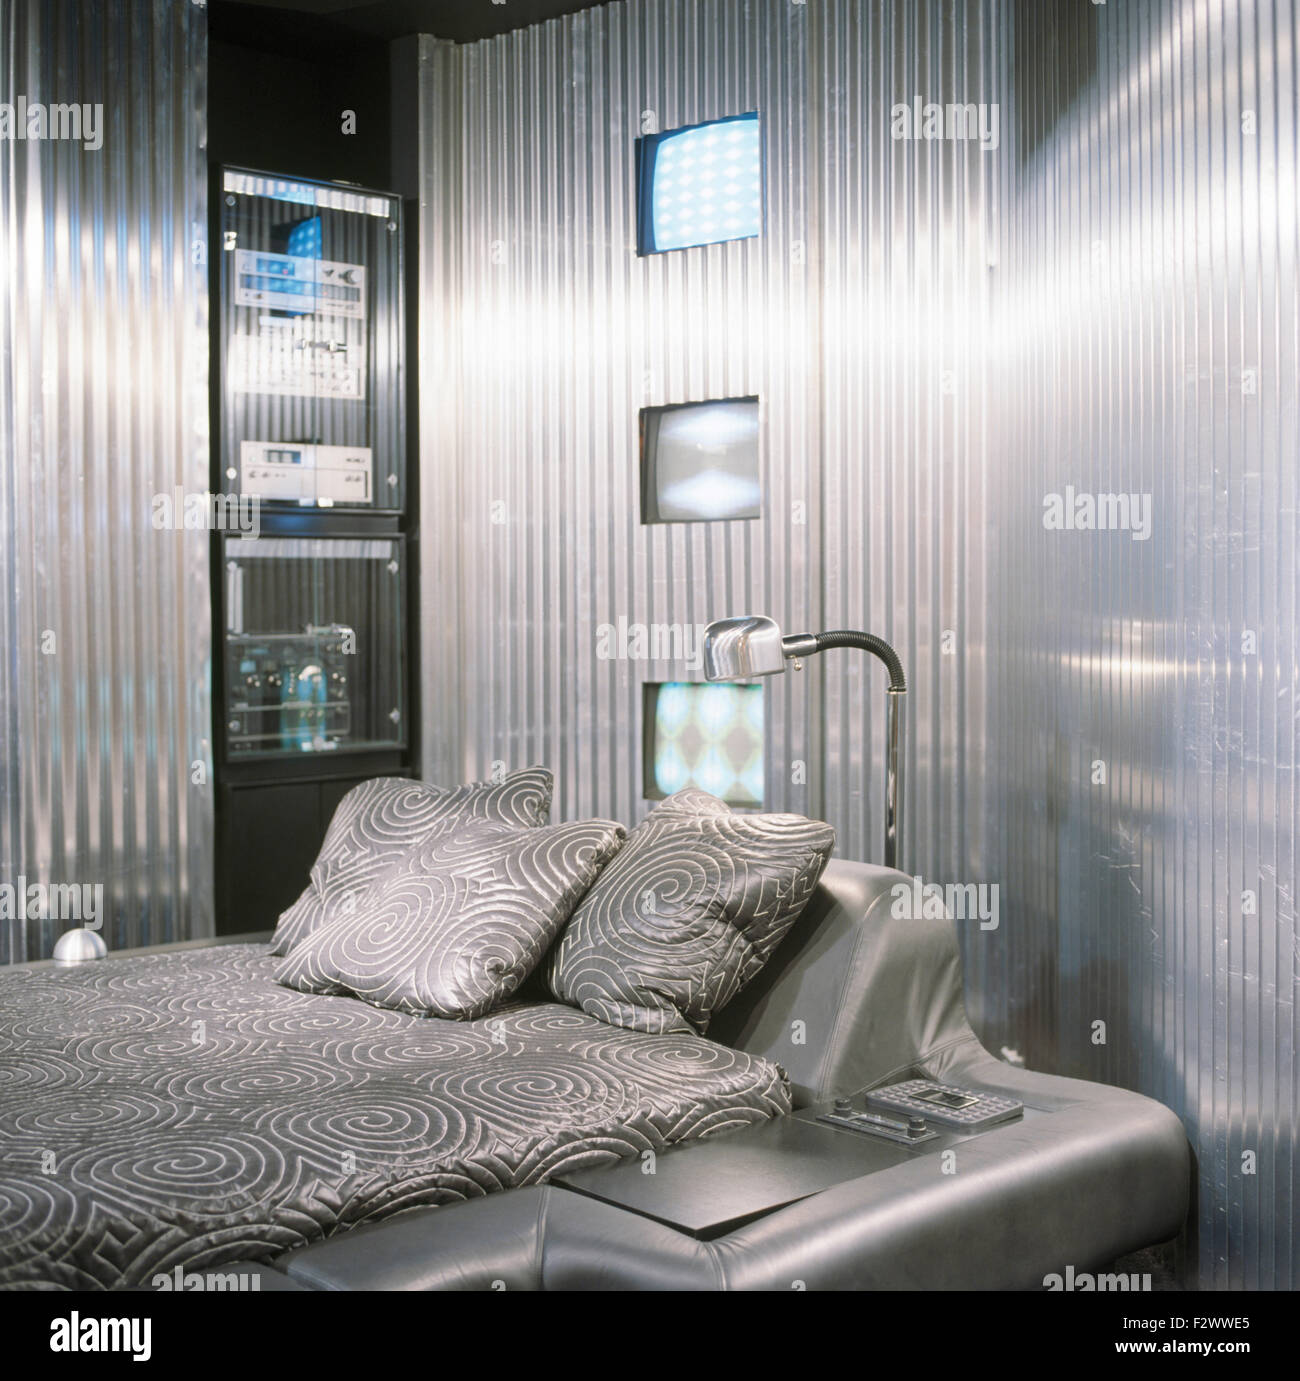 Corrugated metal walls in a silver eighties bedroom with a silver leather fitted bed - Stock Image